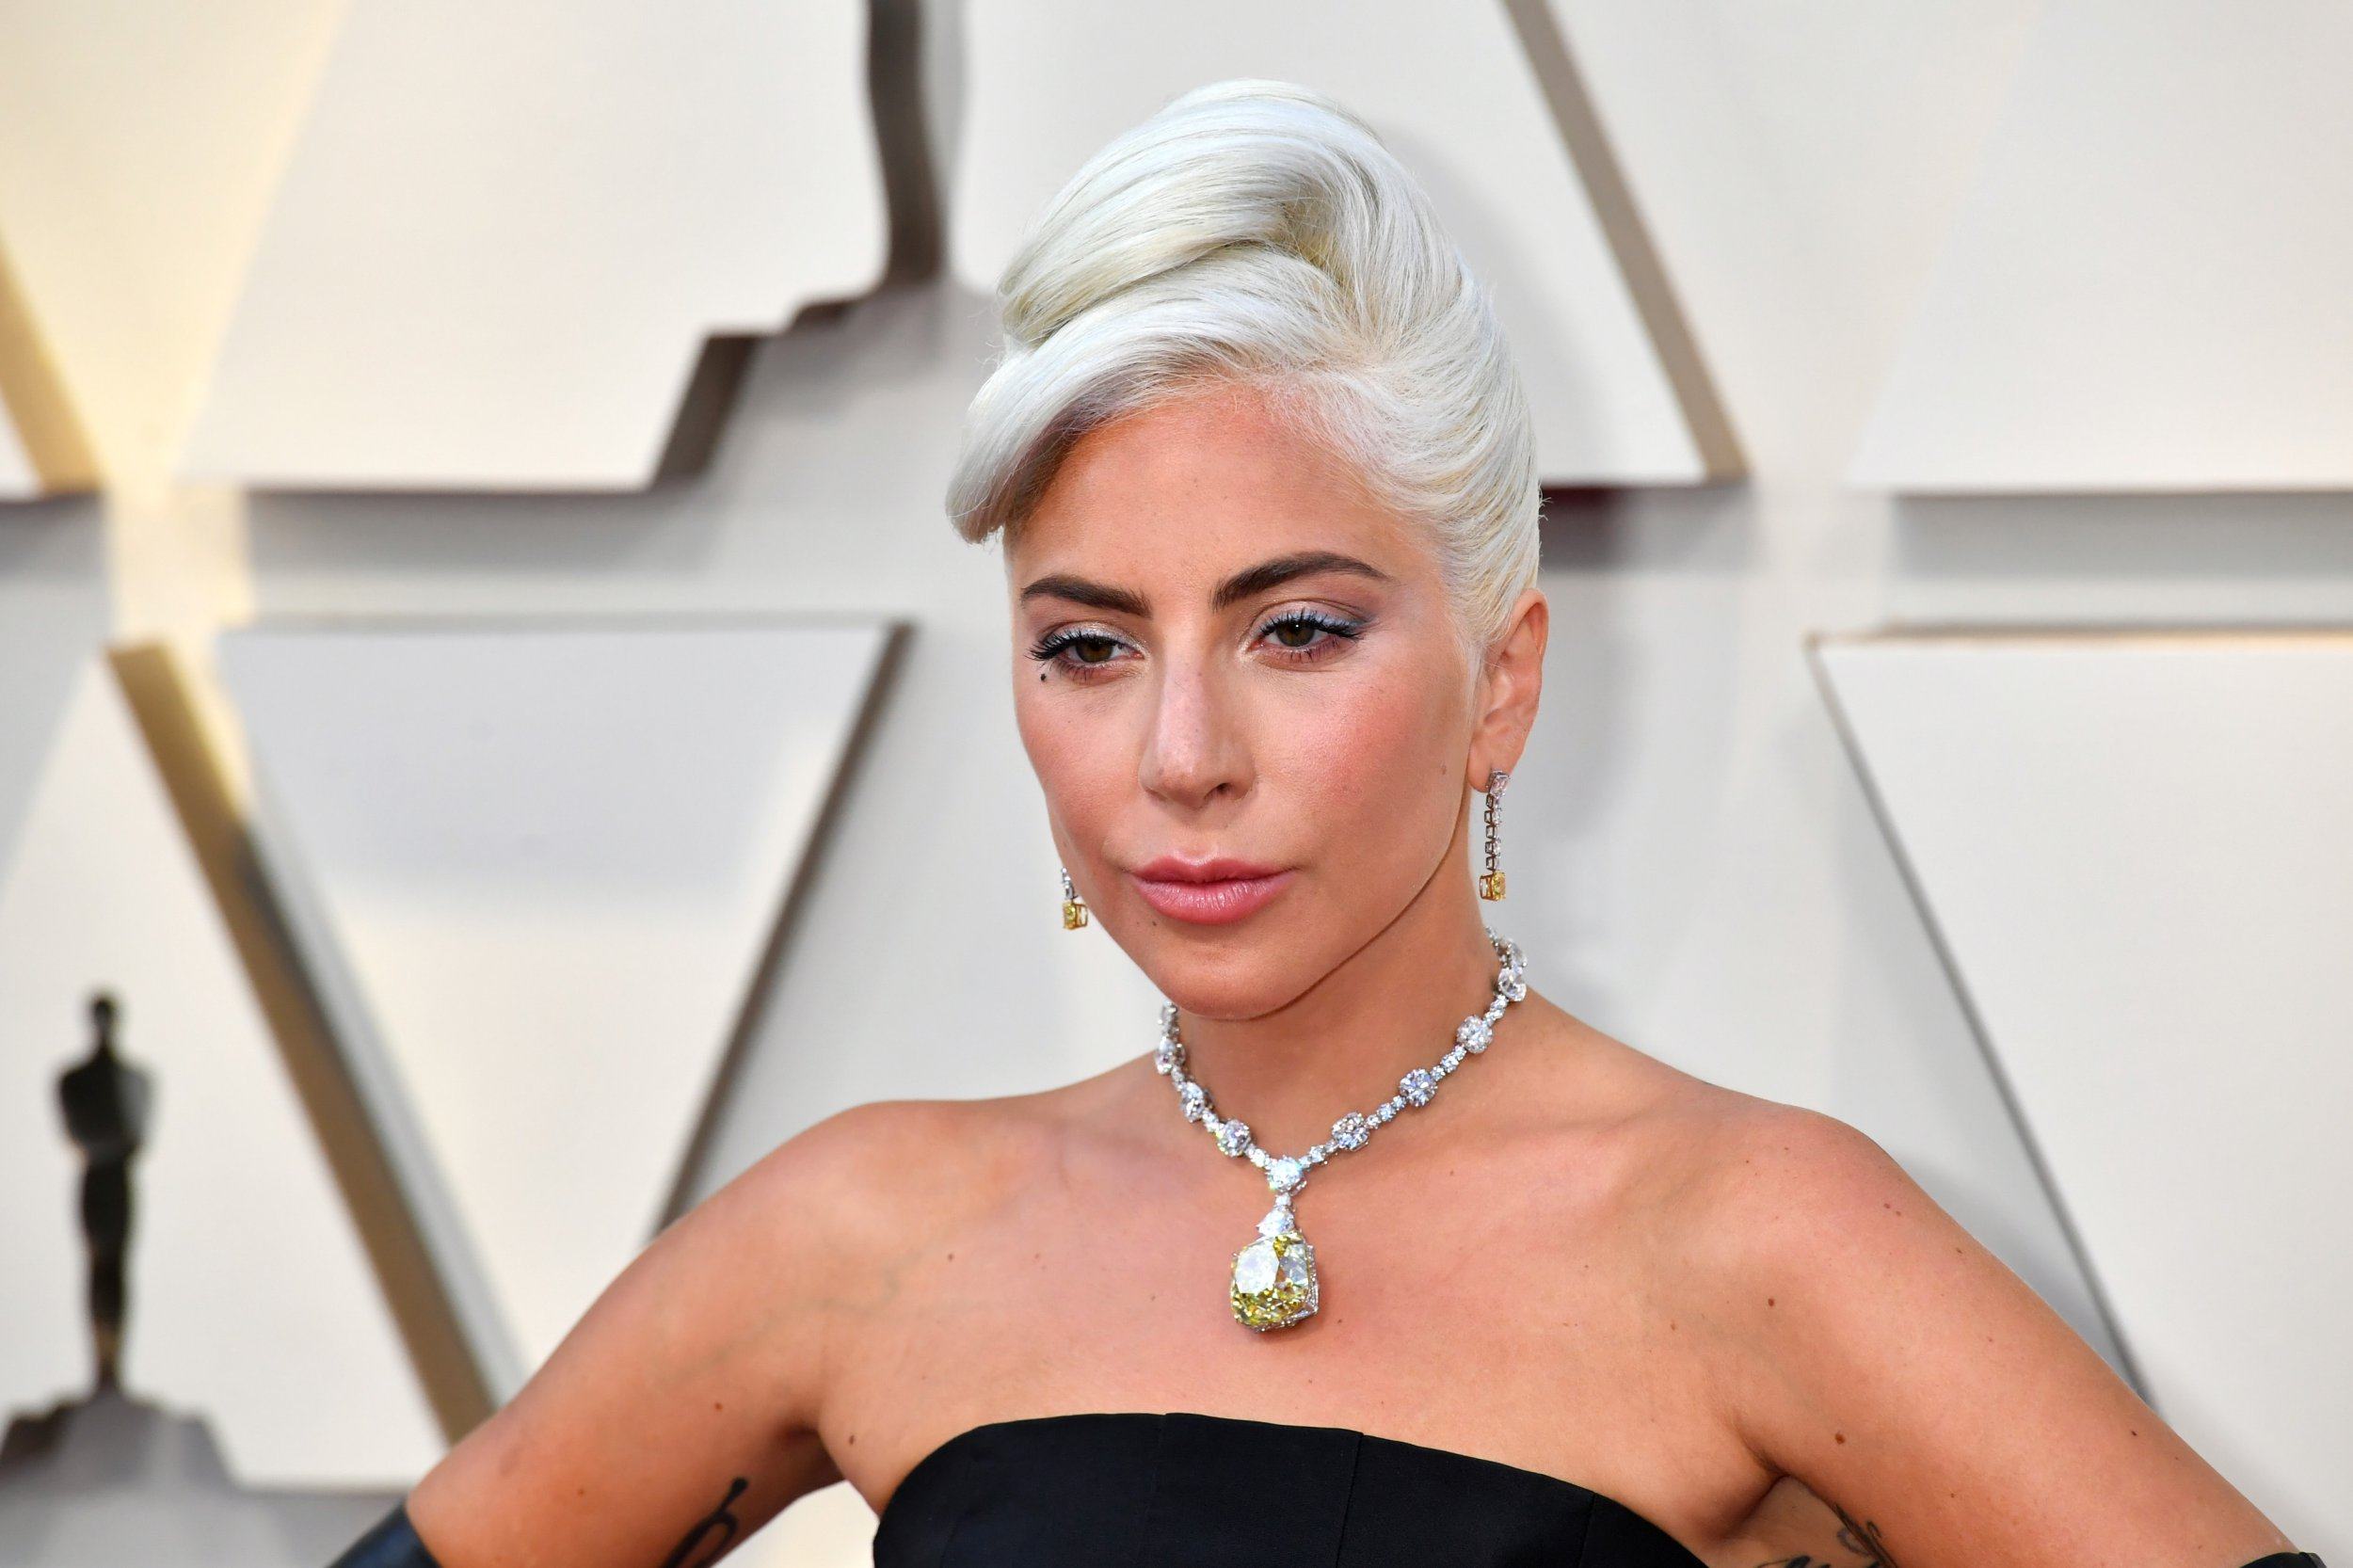 HOLLYWOOD, CA - FEBRUARY 24: Lady Gaga attends the 91st Annual Academy Awards at Hollywood and Highland on February 24, 2019 in Hollywood, California. (Photo by Jeff Kravitz/FilmMagic)